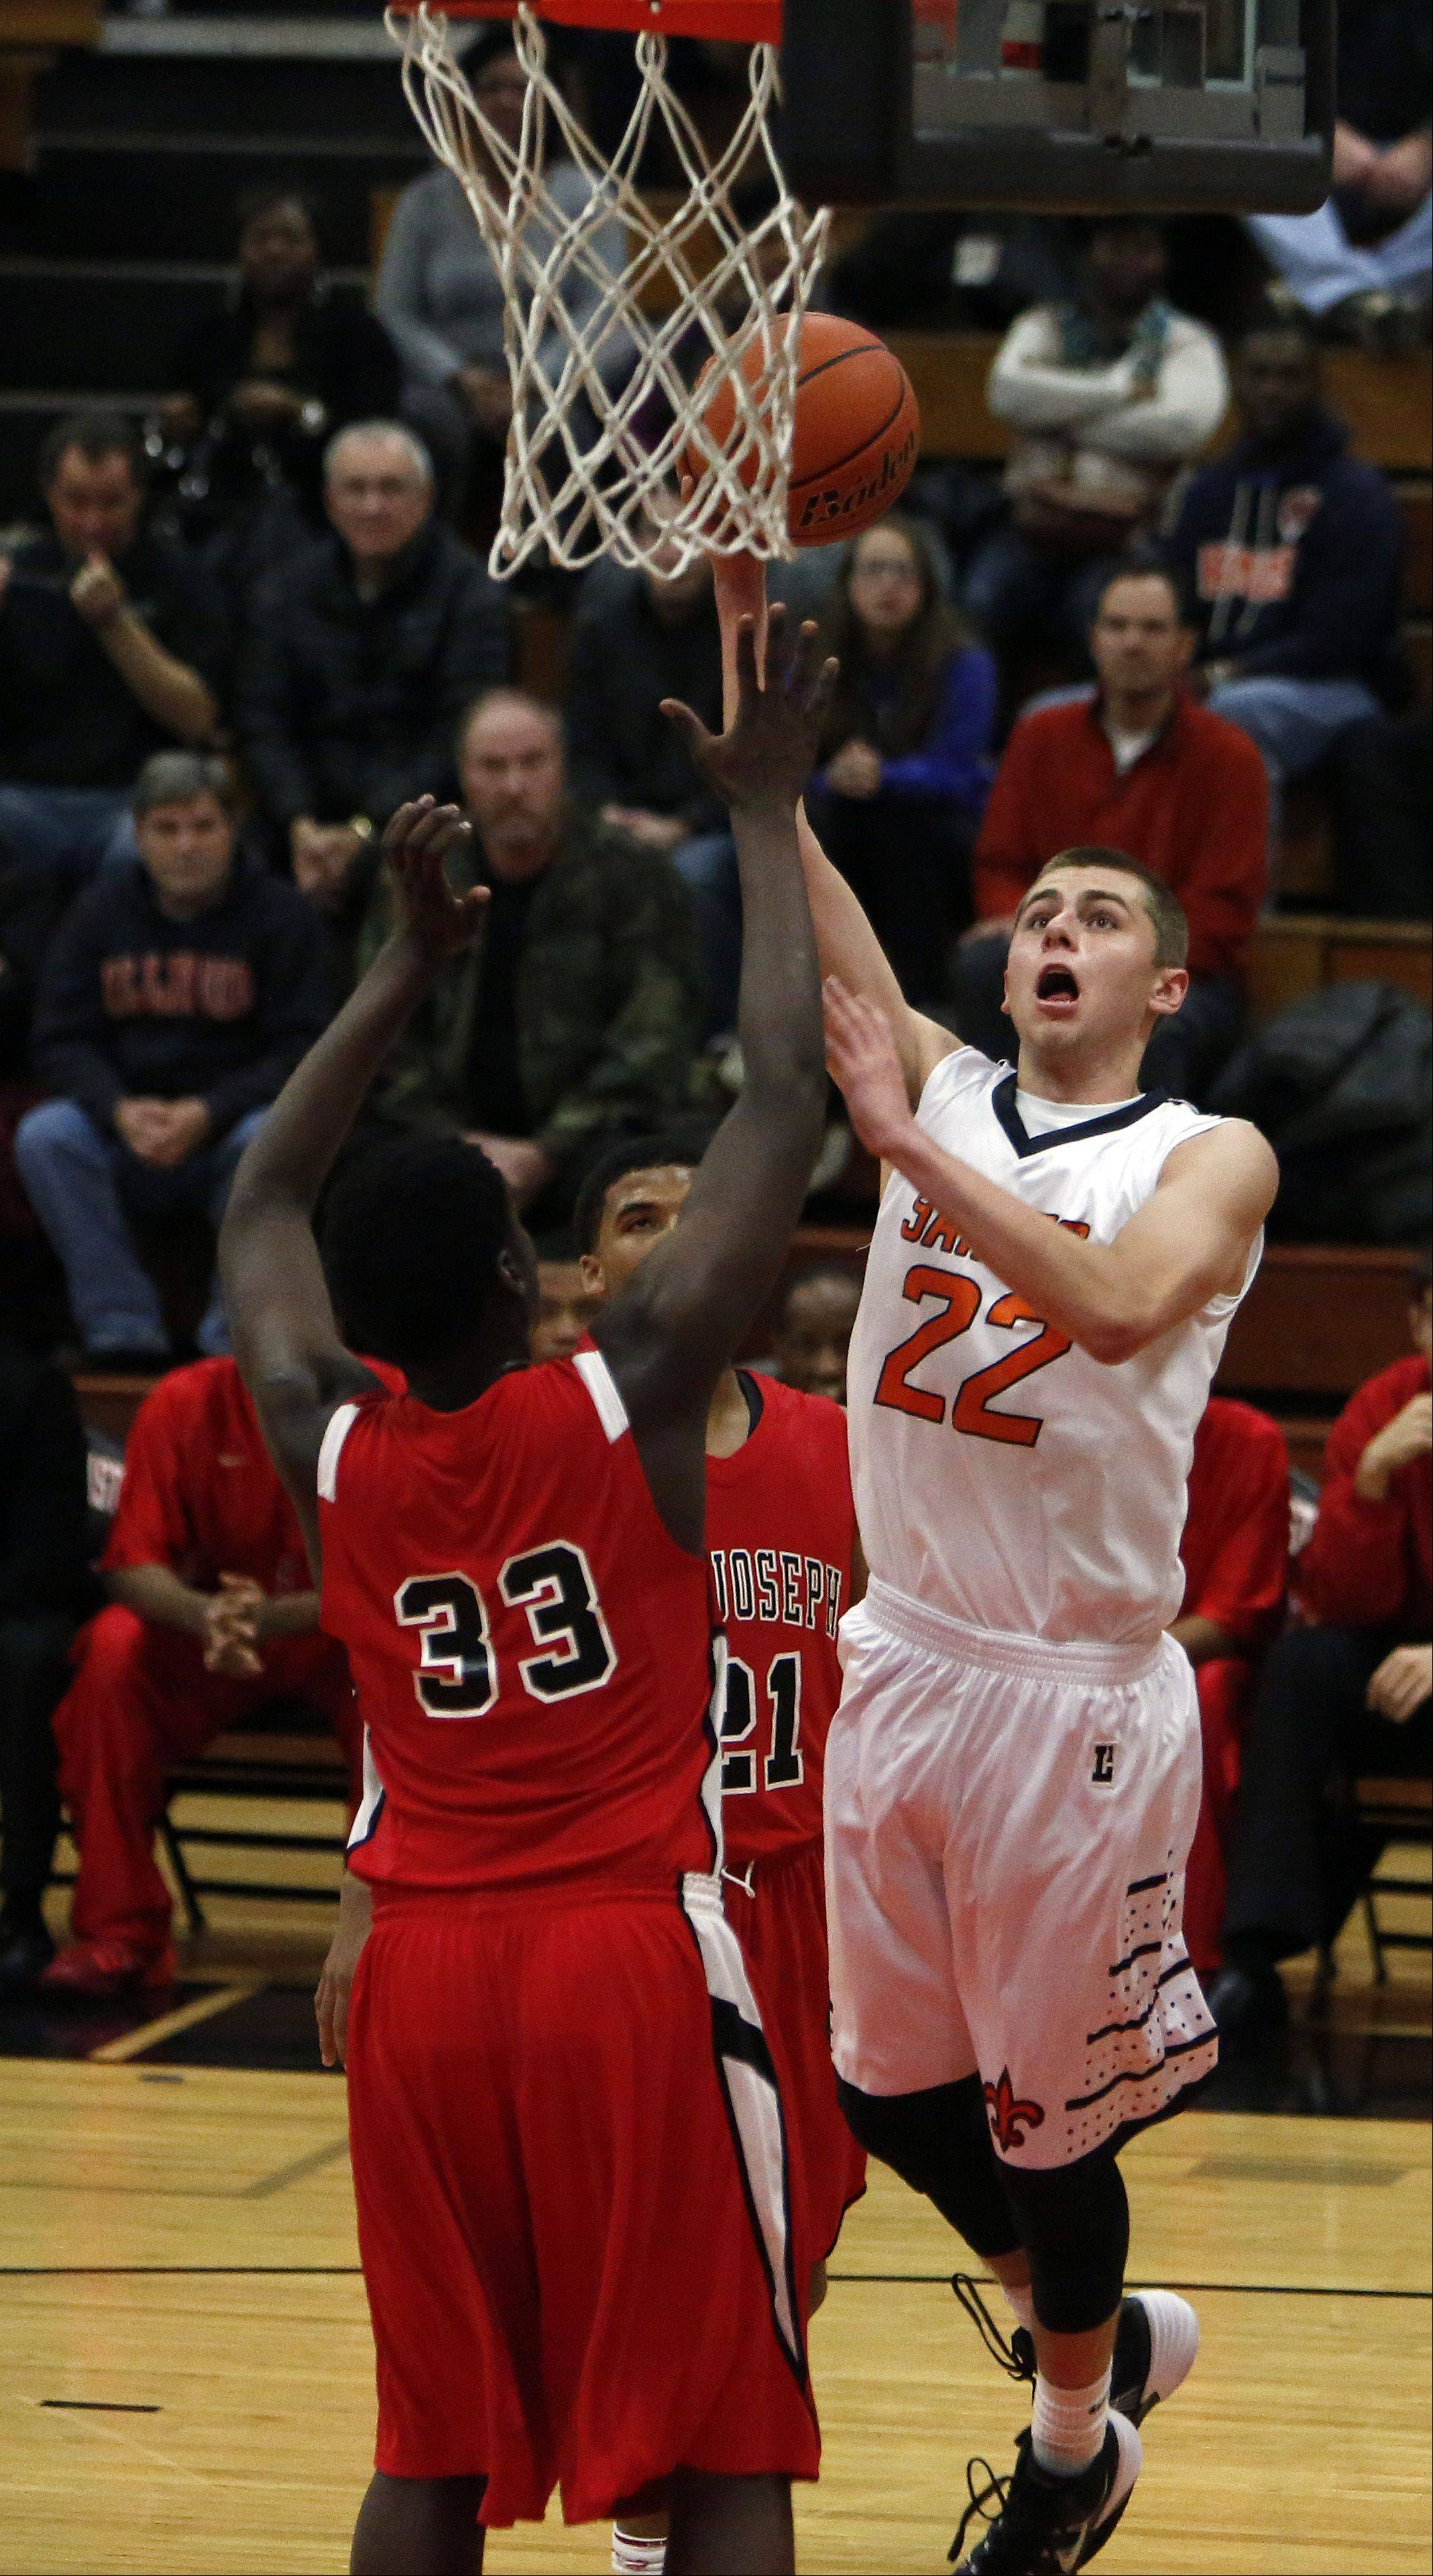 St. Charles East's James McQuillan, 22, makes his way past St. Joeseph's Joffery Brown, 21, and Lavon Thomas, 33, during St. Charles East's 55th annual Ron Johnson Thanksgiving Tournament Friday in St. Charles.